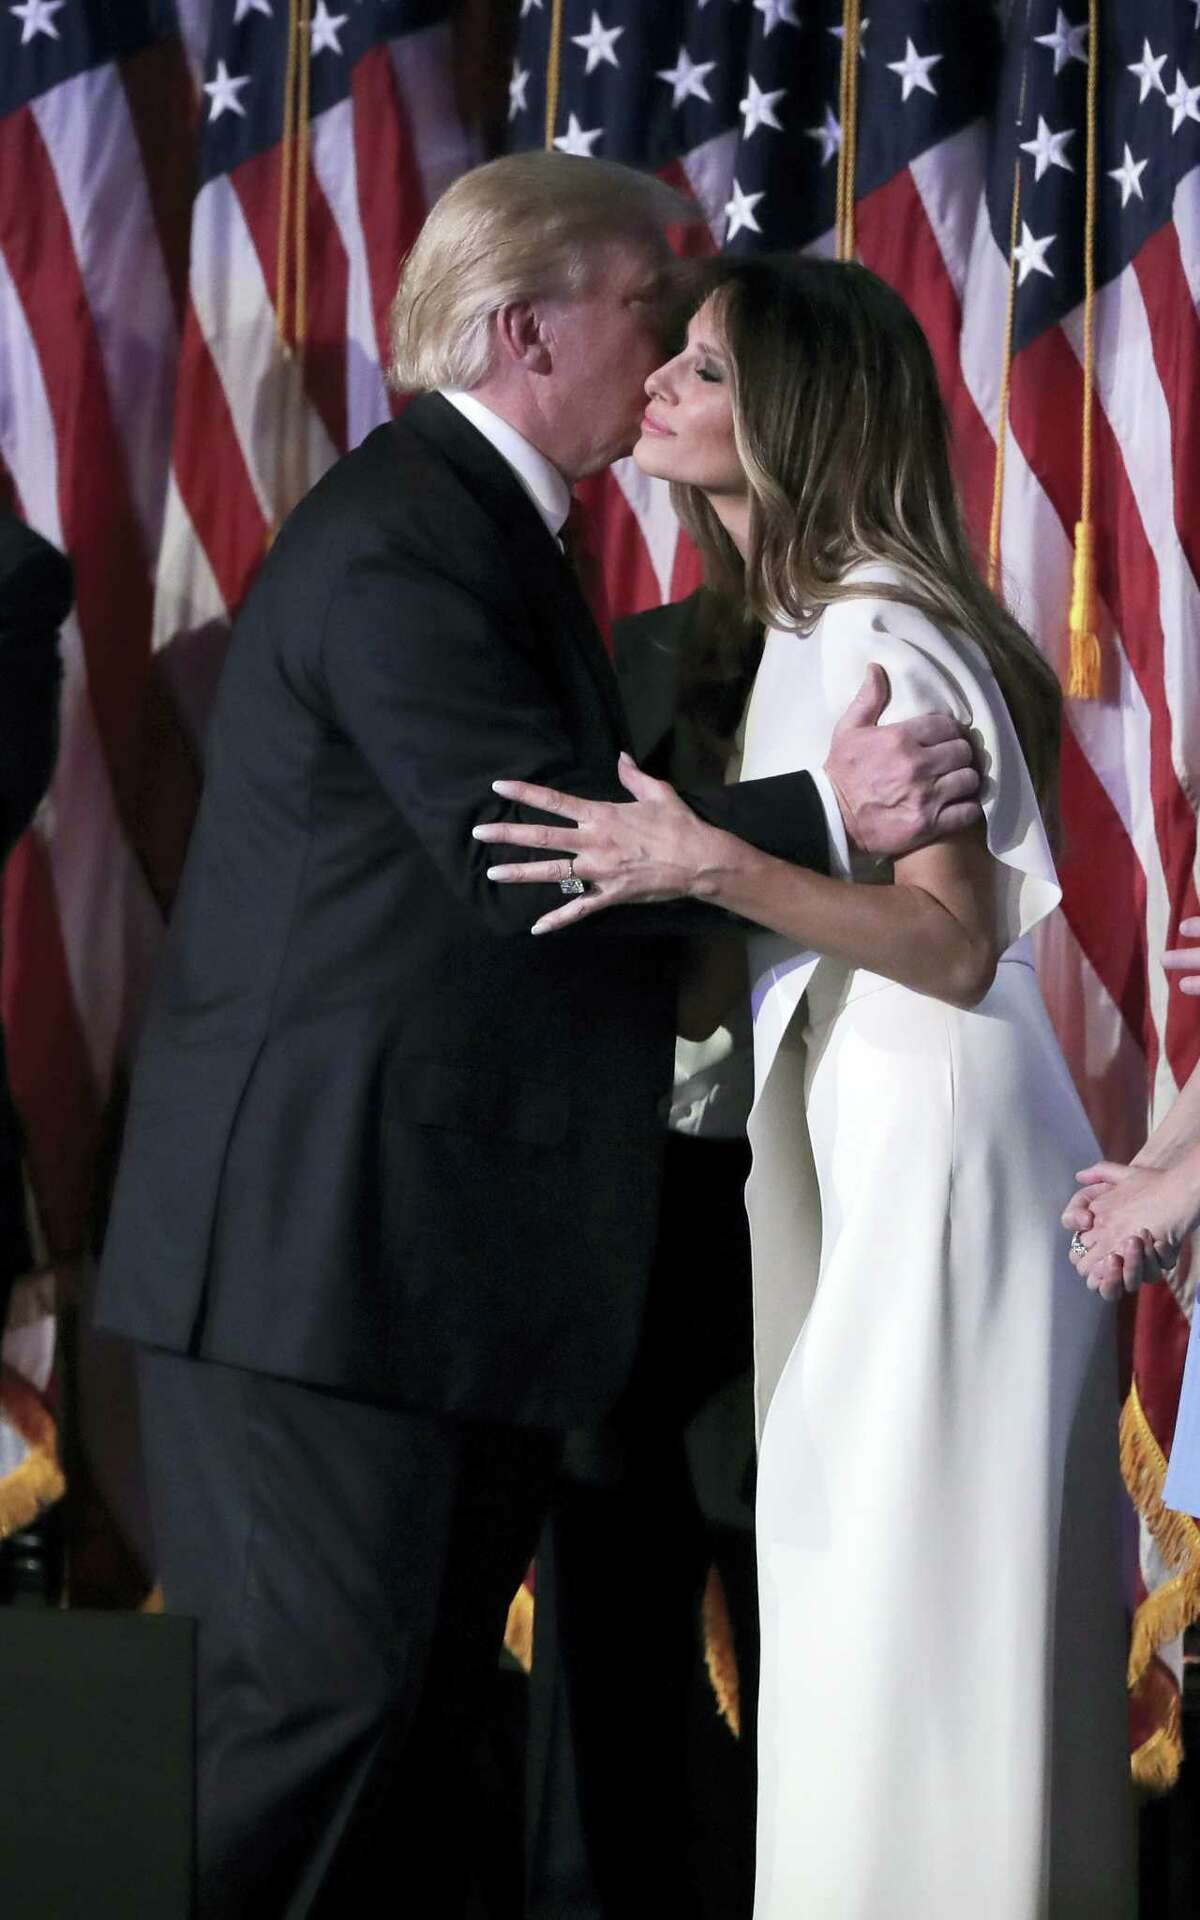 President-elect Donald Trump kisses his wife Melania Trump after giving his acceptance speech during his election night rally Wednesday, Nov. 9, 2016 in New York.